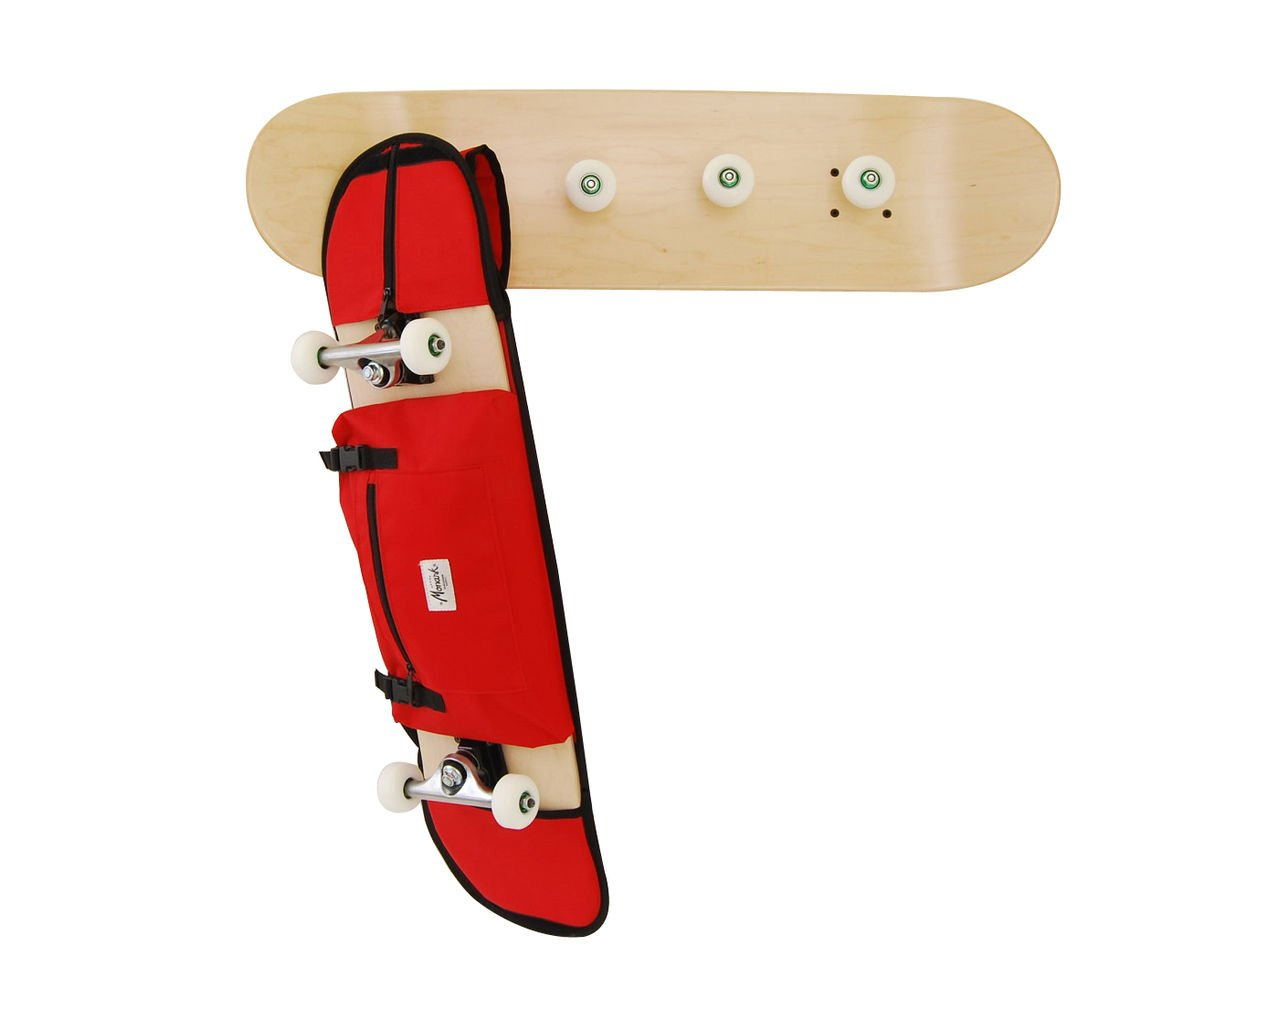 Skateboard-themed Coat rack by Skate-Home + red Monark Supply skateboard carry bag.Includes Screws and Anchors. Varnished in natural wood color.